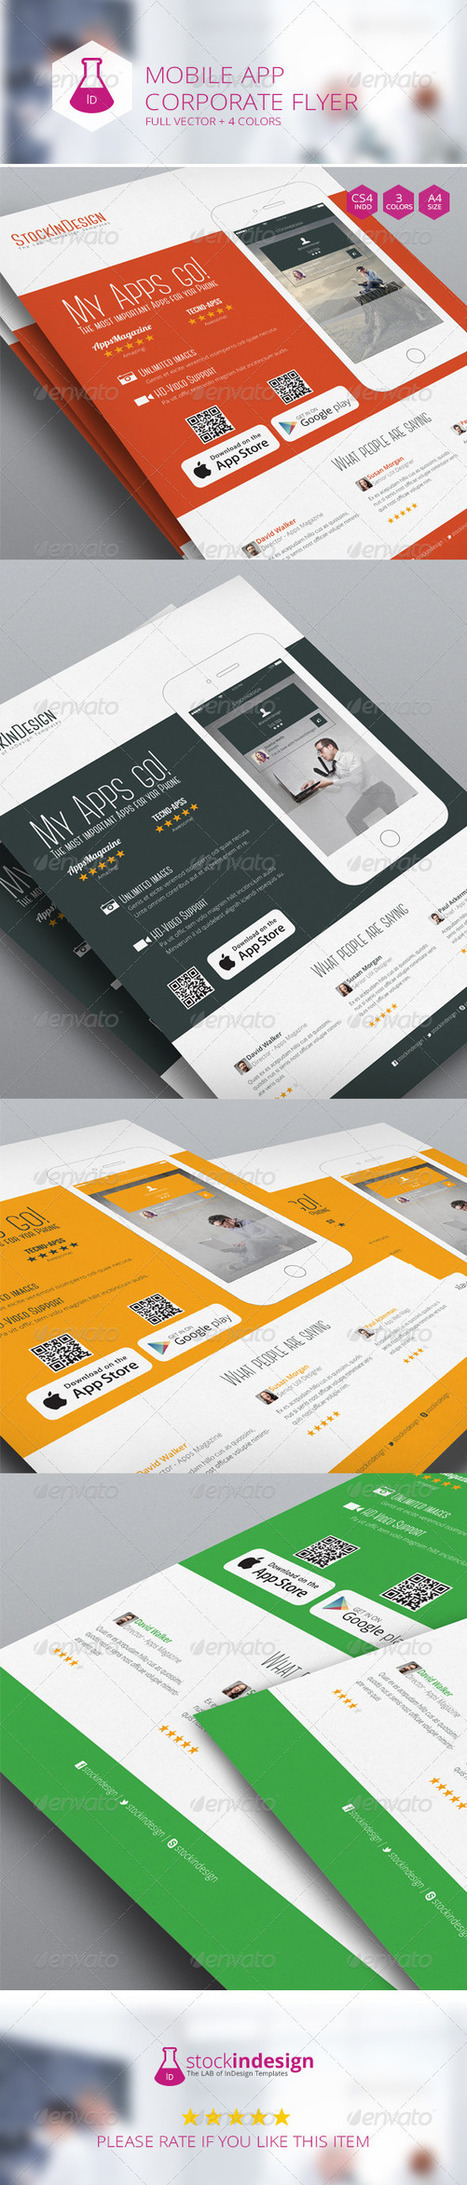 Mobile App Flyer - Flat Design (Corporate) | Something about Flat Design | Scoop.it